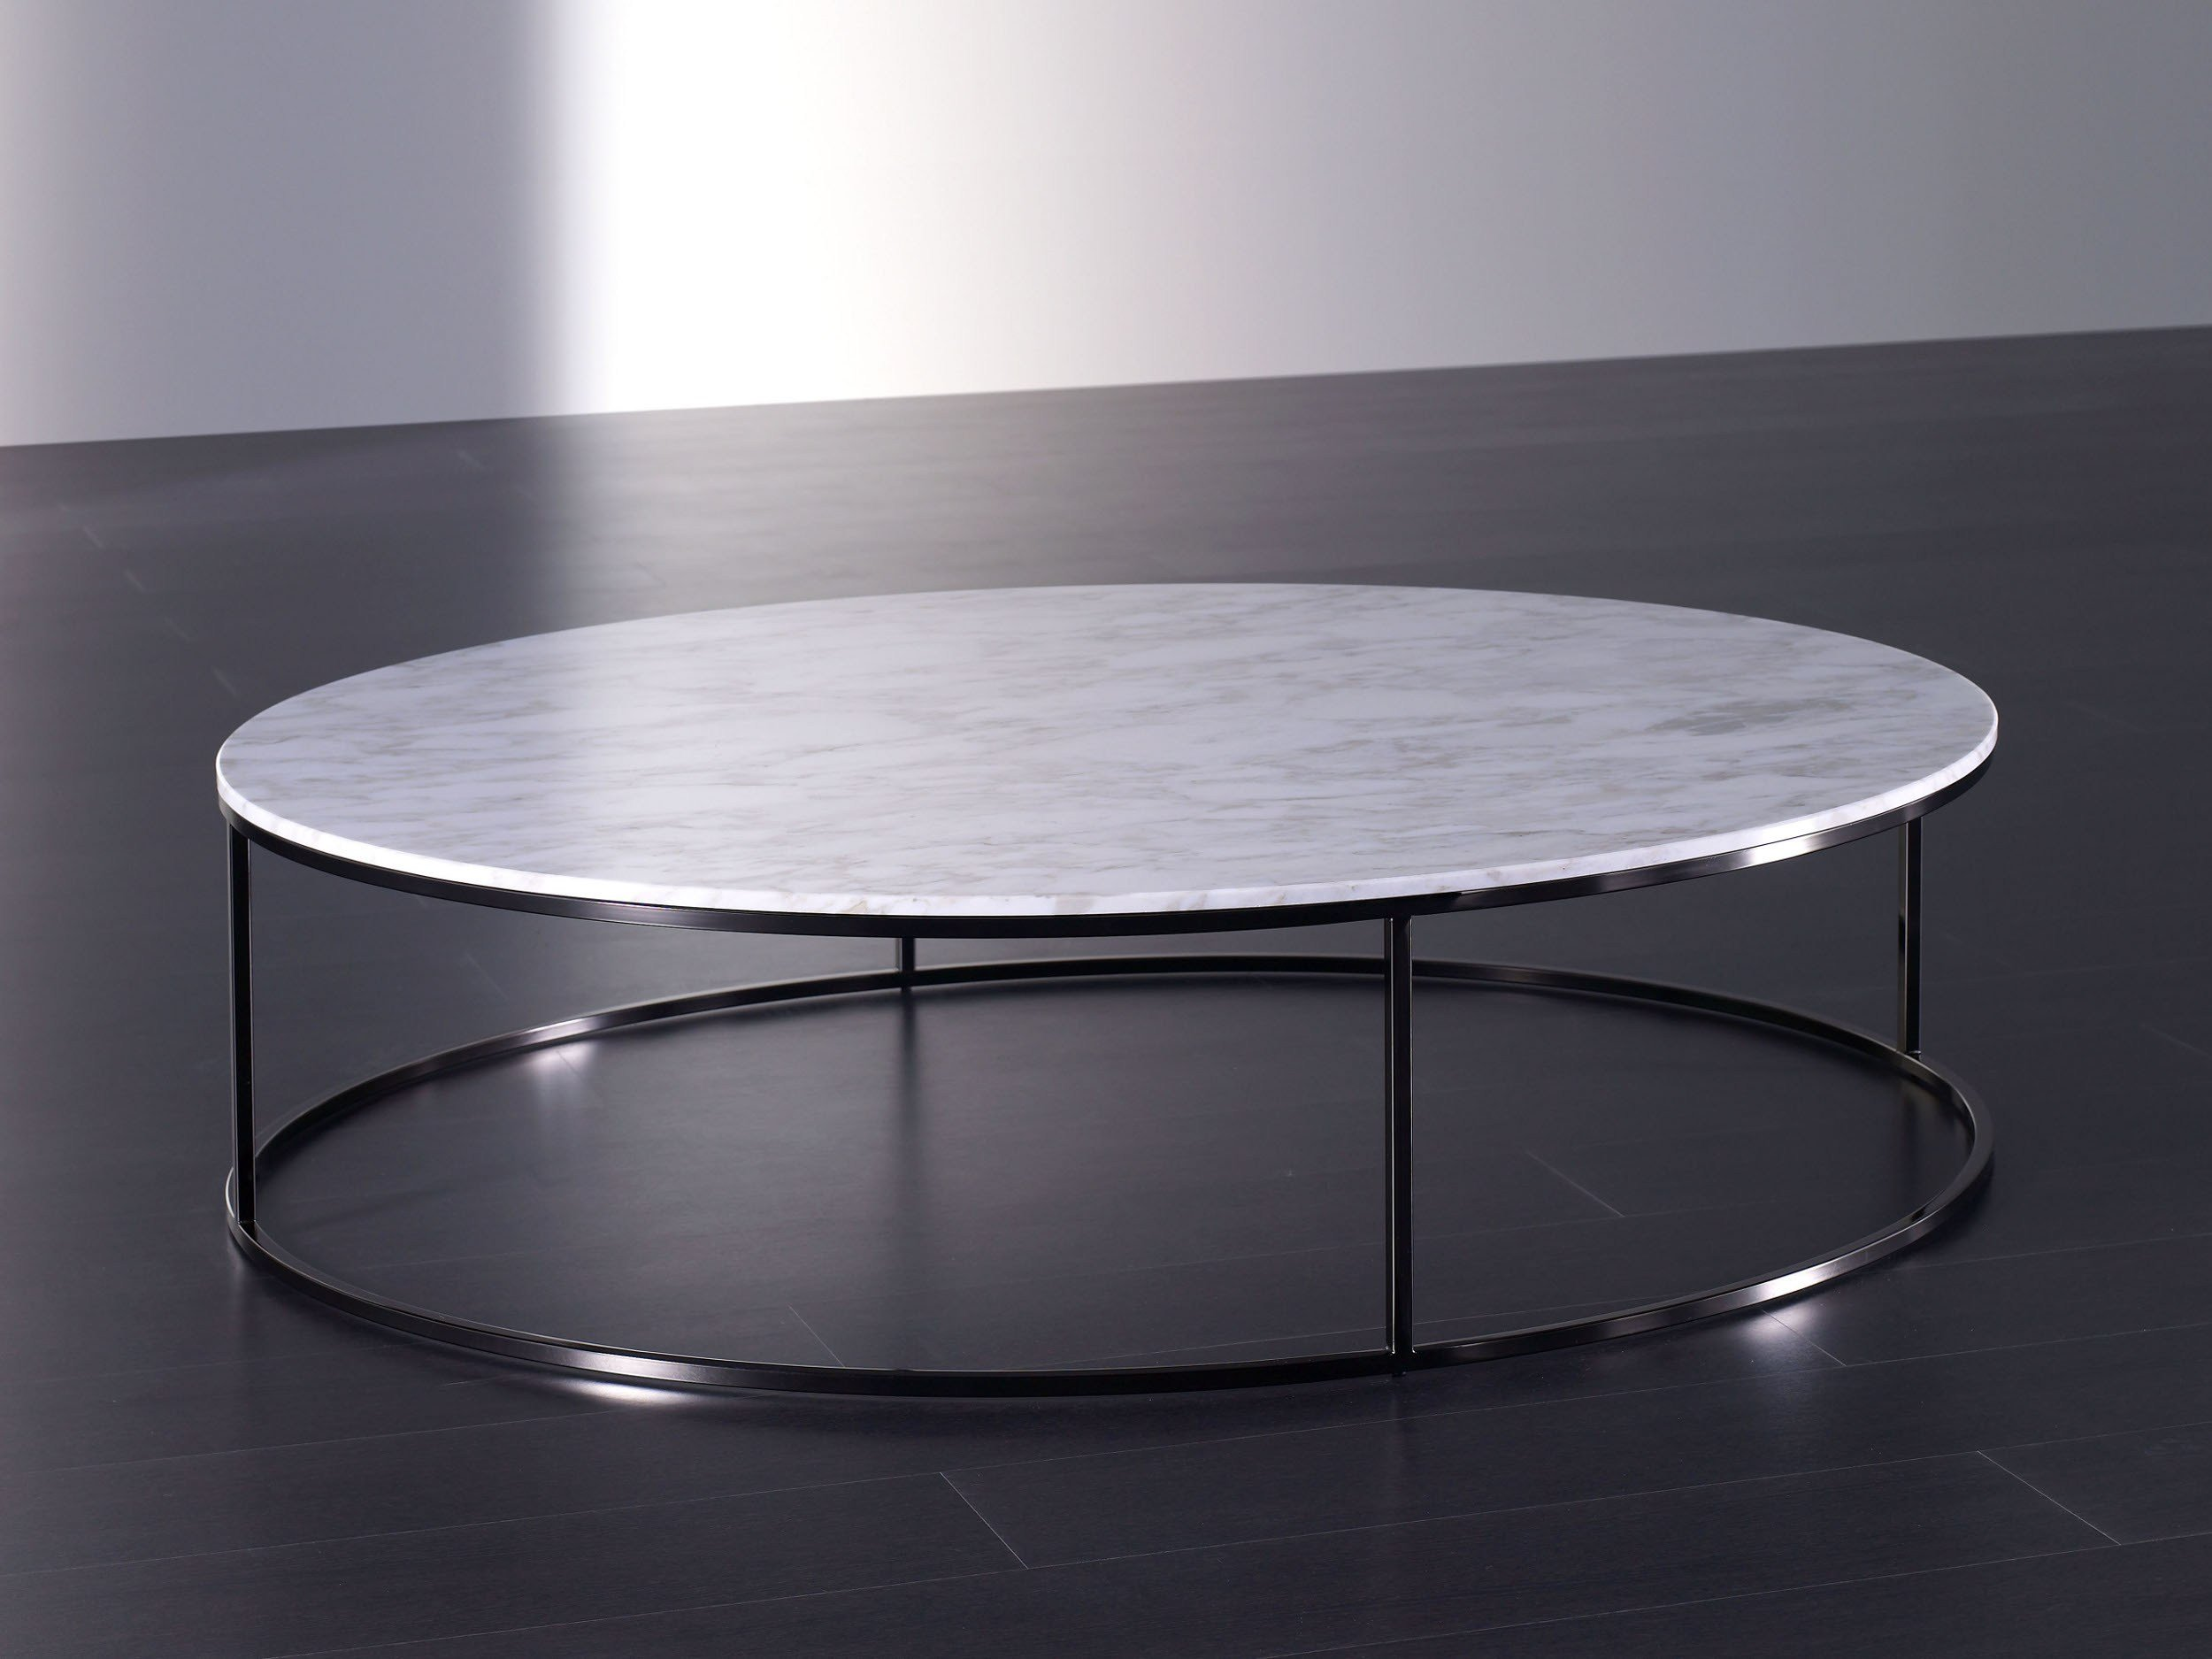 Low round coffee table BONGO By Meridiani design Andrea Parisio